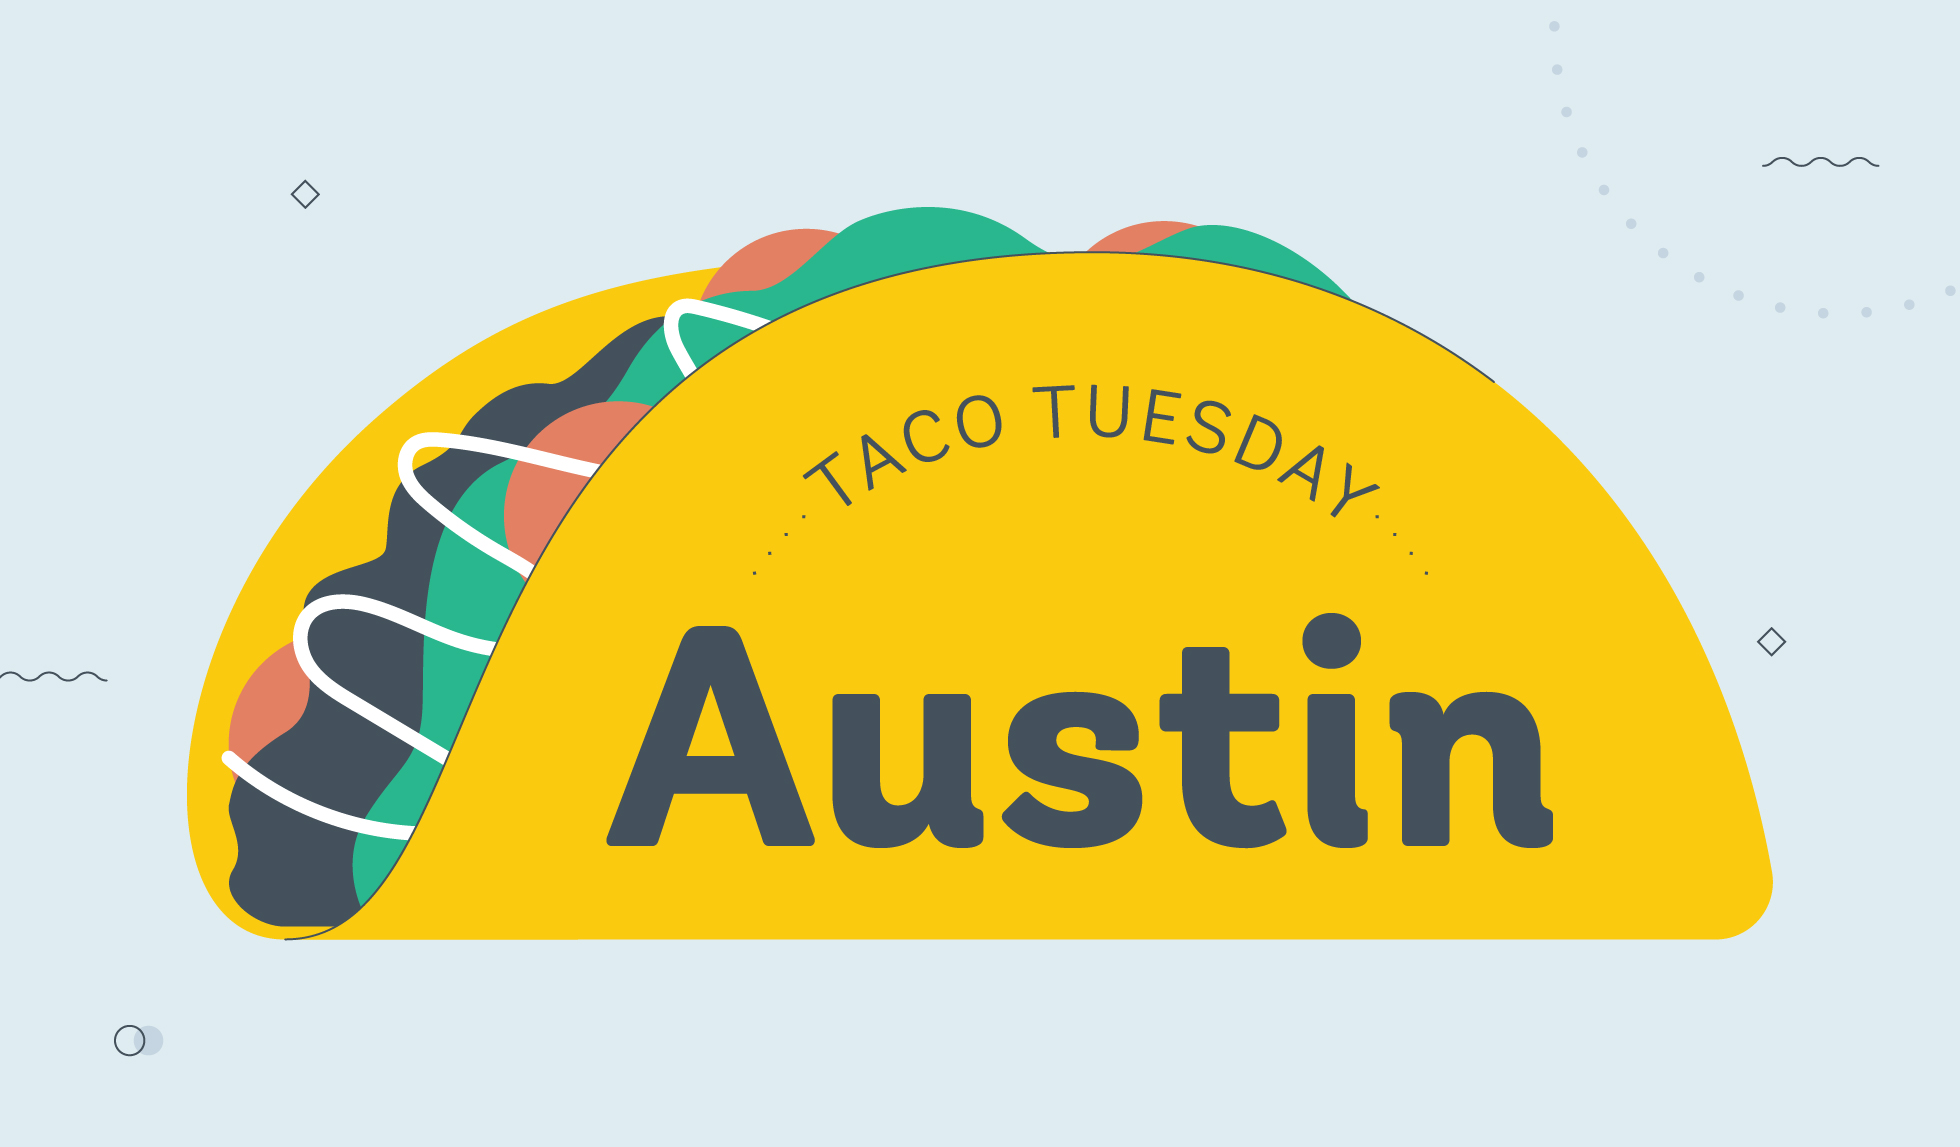 taco tuesday austin graphic